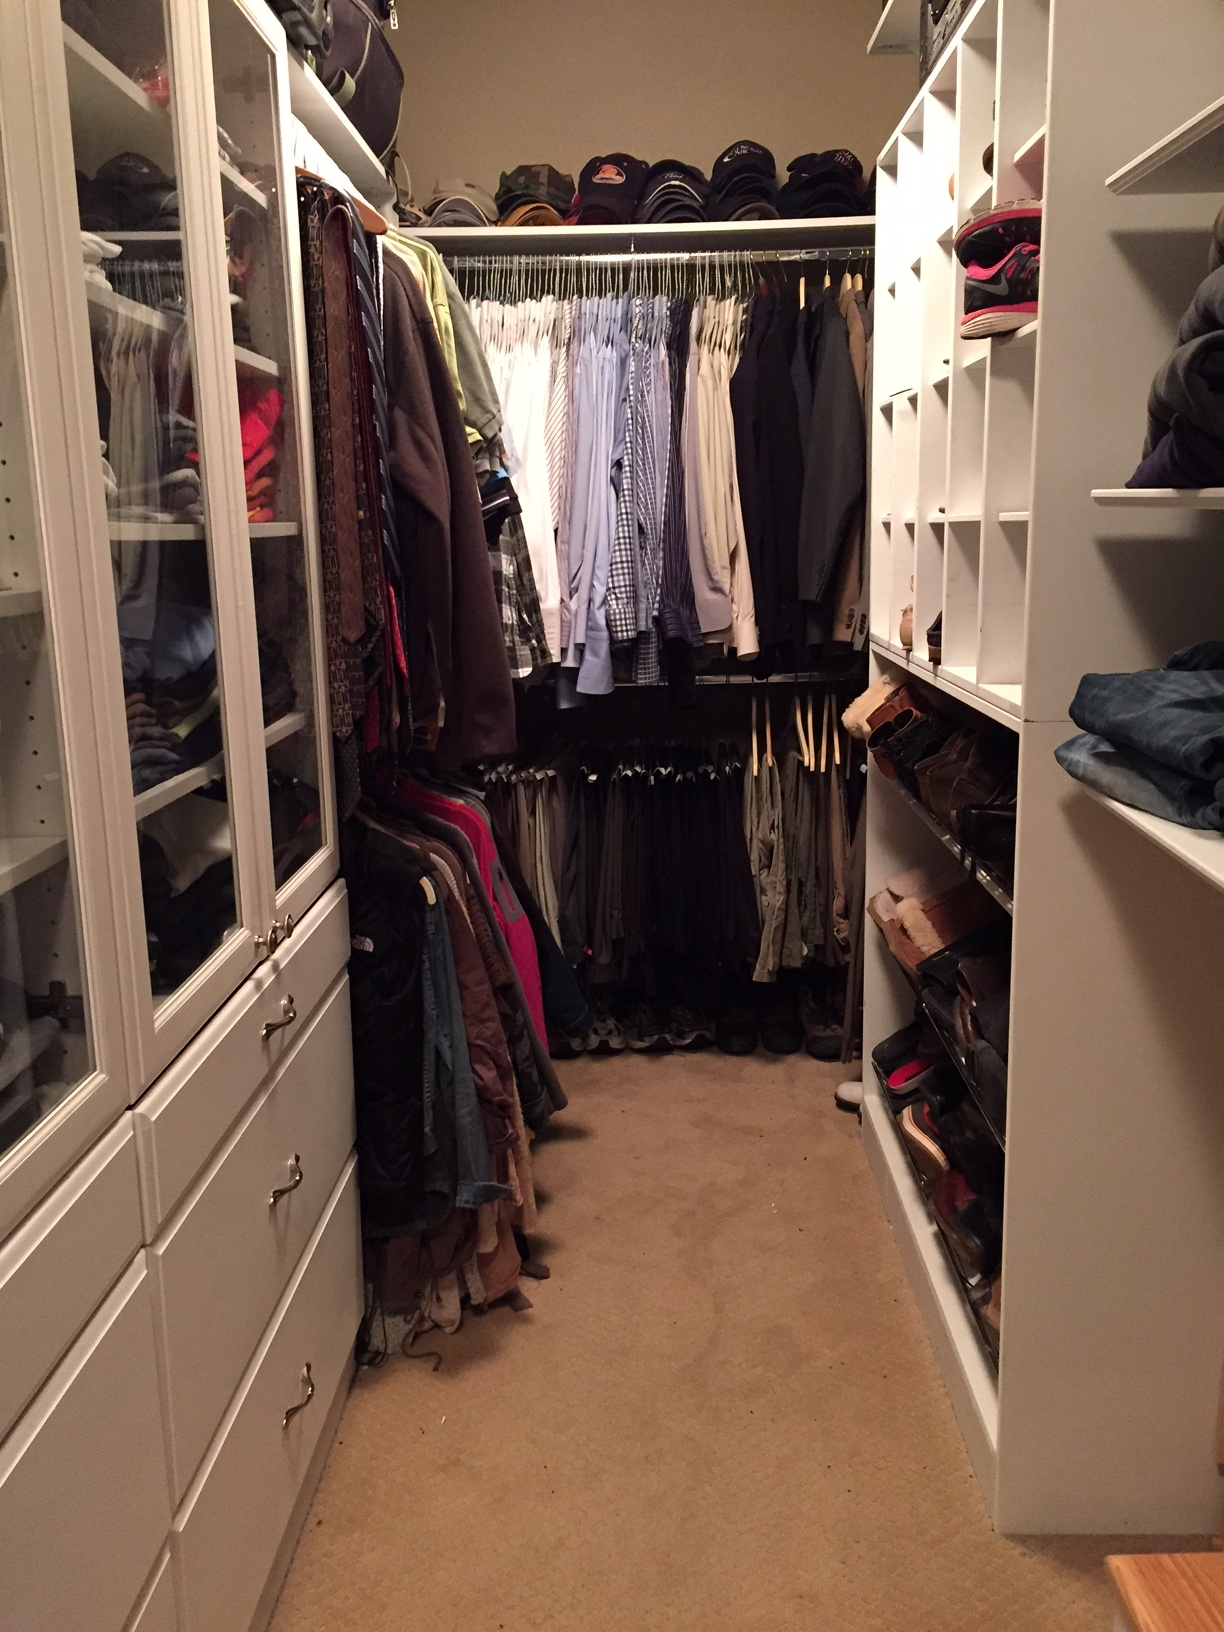 Same closet put back together.